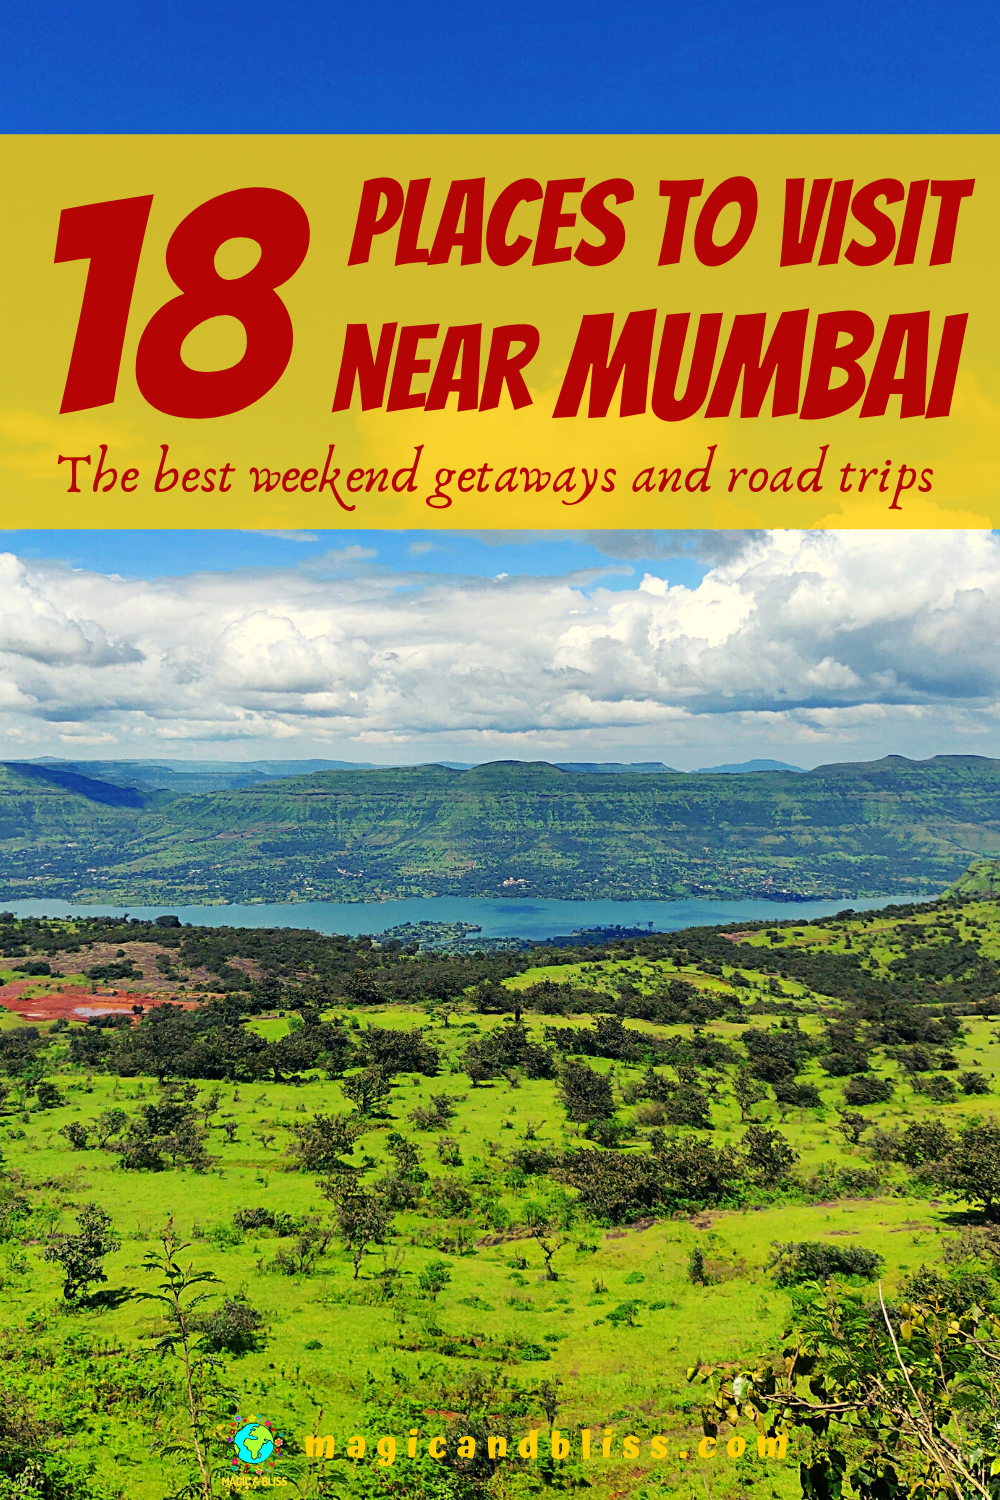 18 Places To Visit Near Mumbai The Best Weekend Getaways And Road Trips Travel Destinations Asia Trip Travel